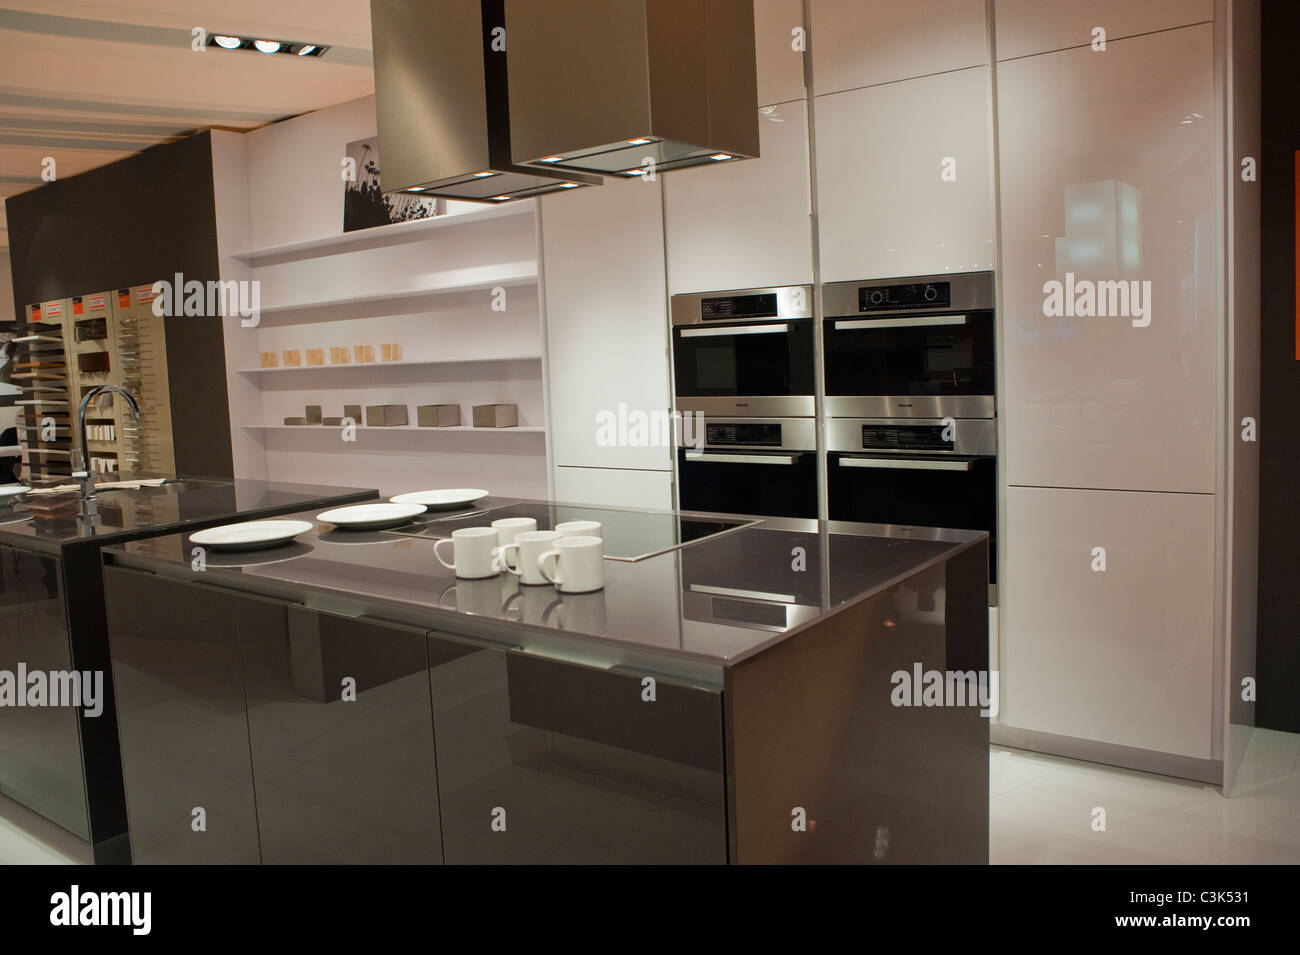 Cuisine Schmidt Foire De Paris paris, france, contemporary style kitchen interior at